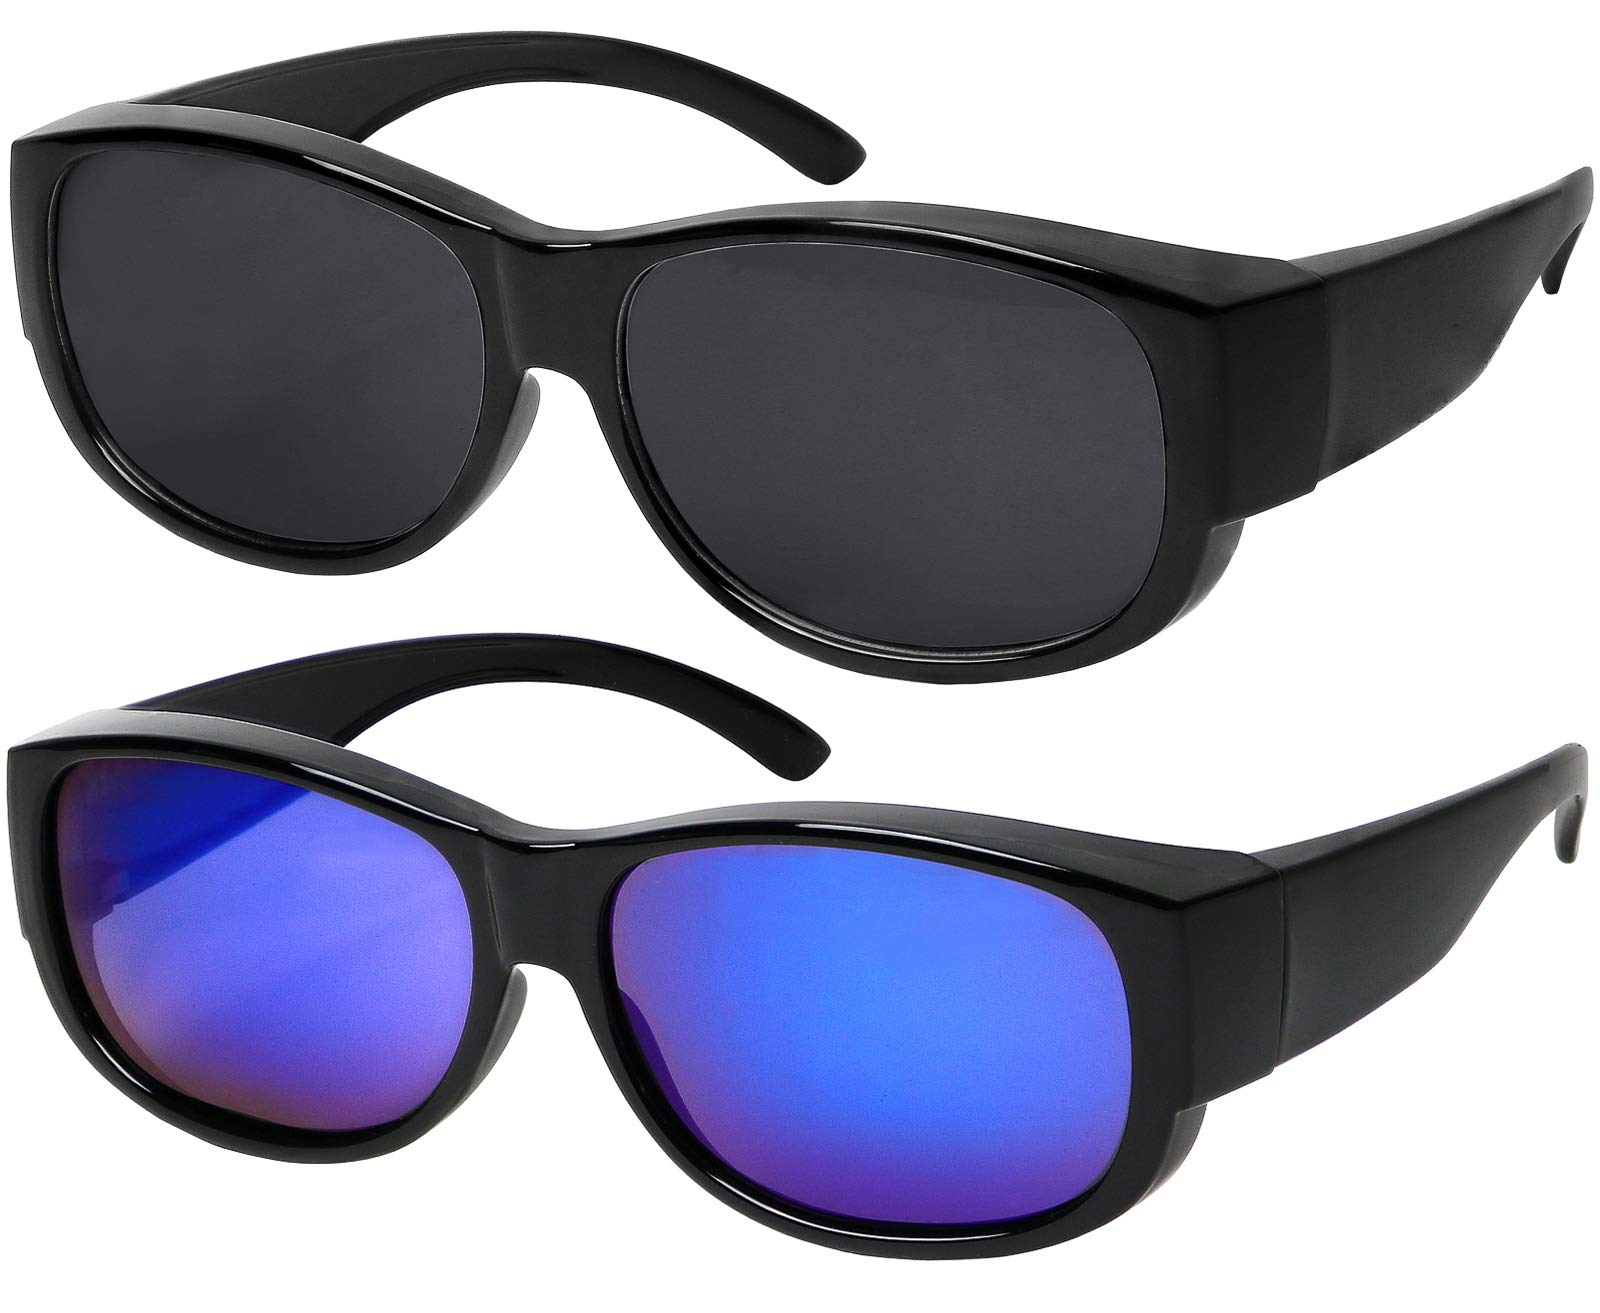 Fit Over Sunglasses With Polarized Lens 100% UV Protection Wear Over Prescription Eyeglasses Set of Smoke and Blue Mirror